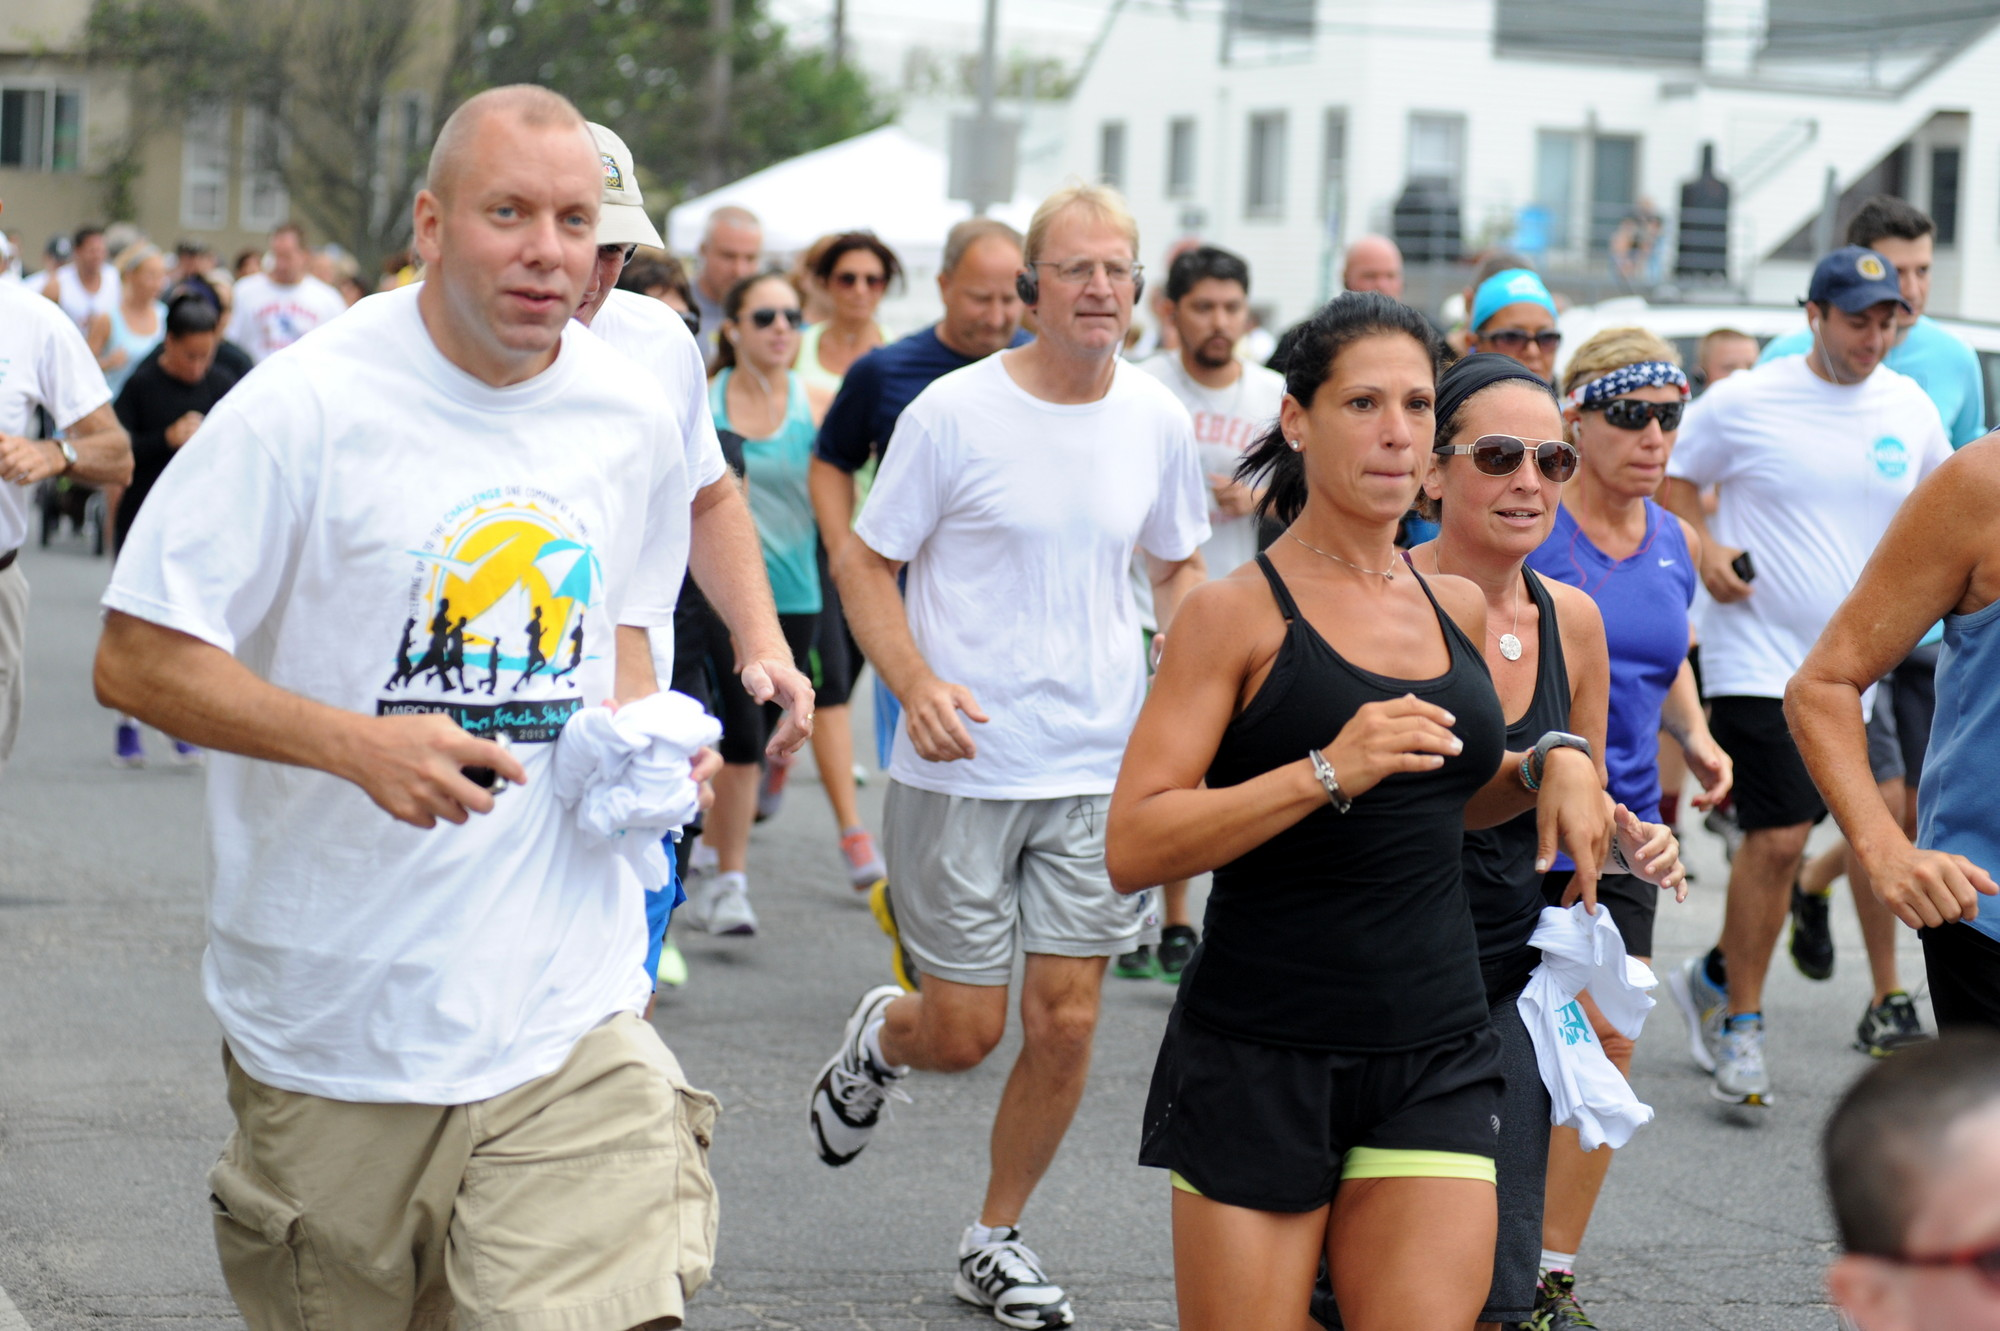 Hundreds participated in last Saturday's 5K in Elovich's memory.